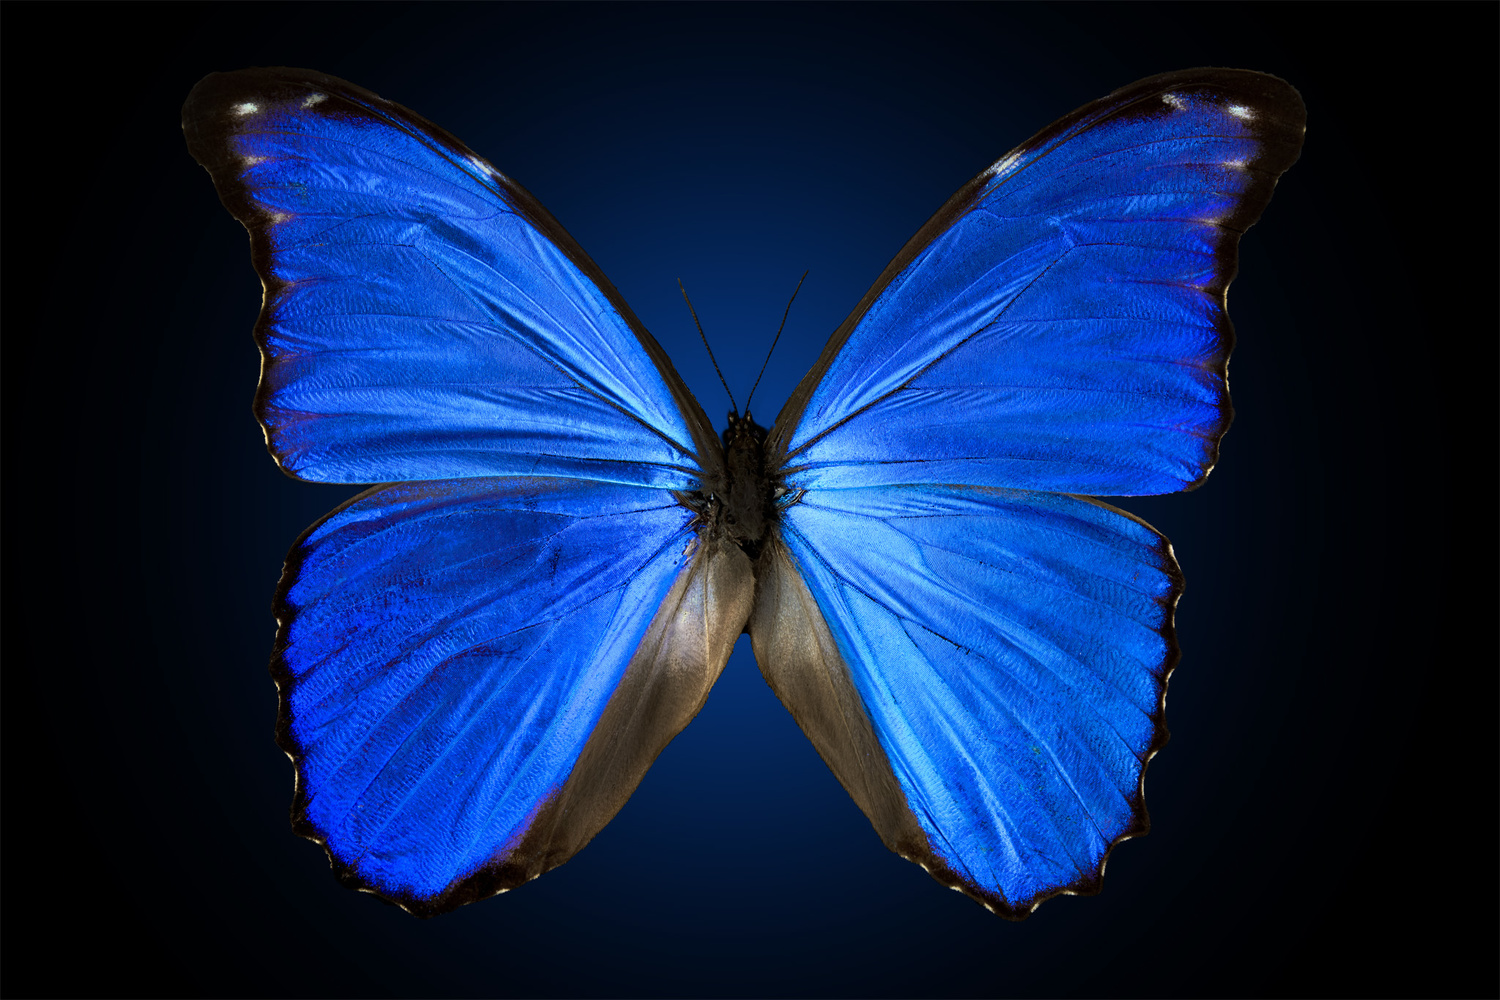 Morpho butterfly by Pierre Anquet